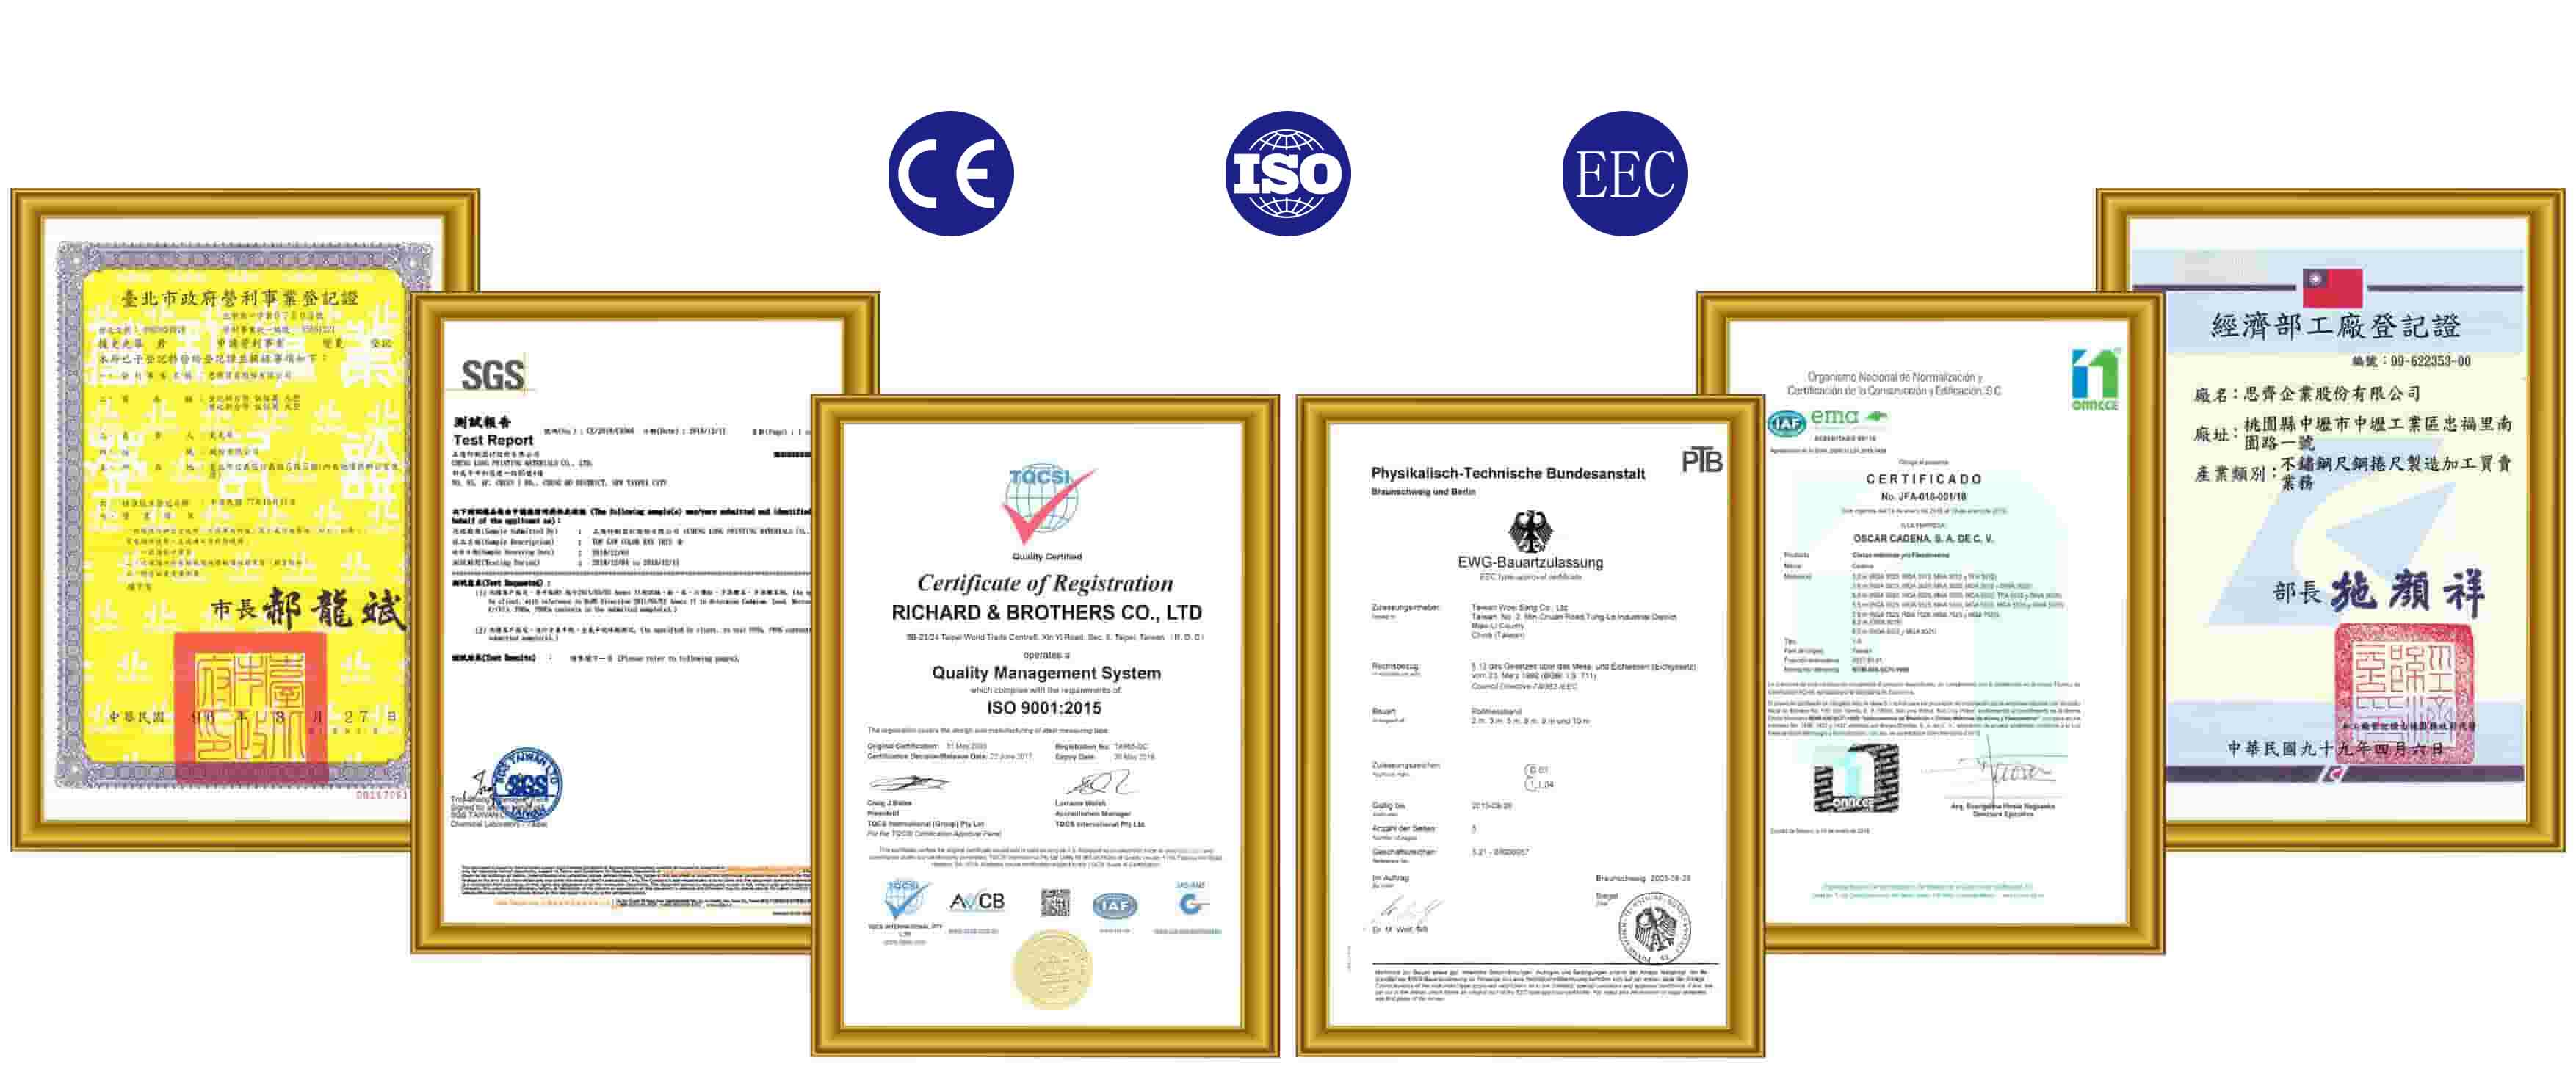 iso, ce, eec certificate approved